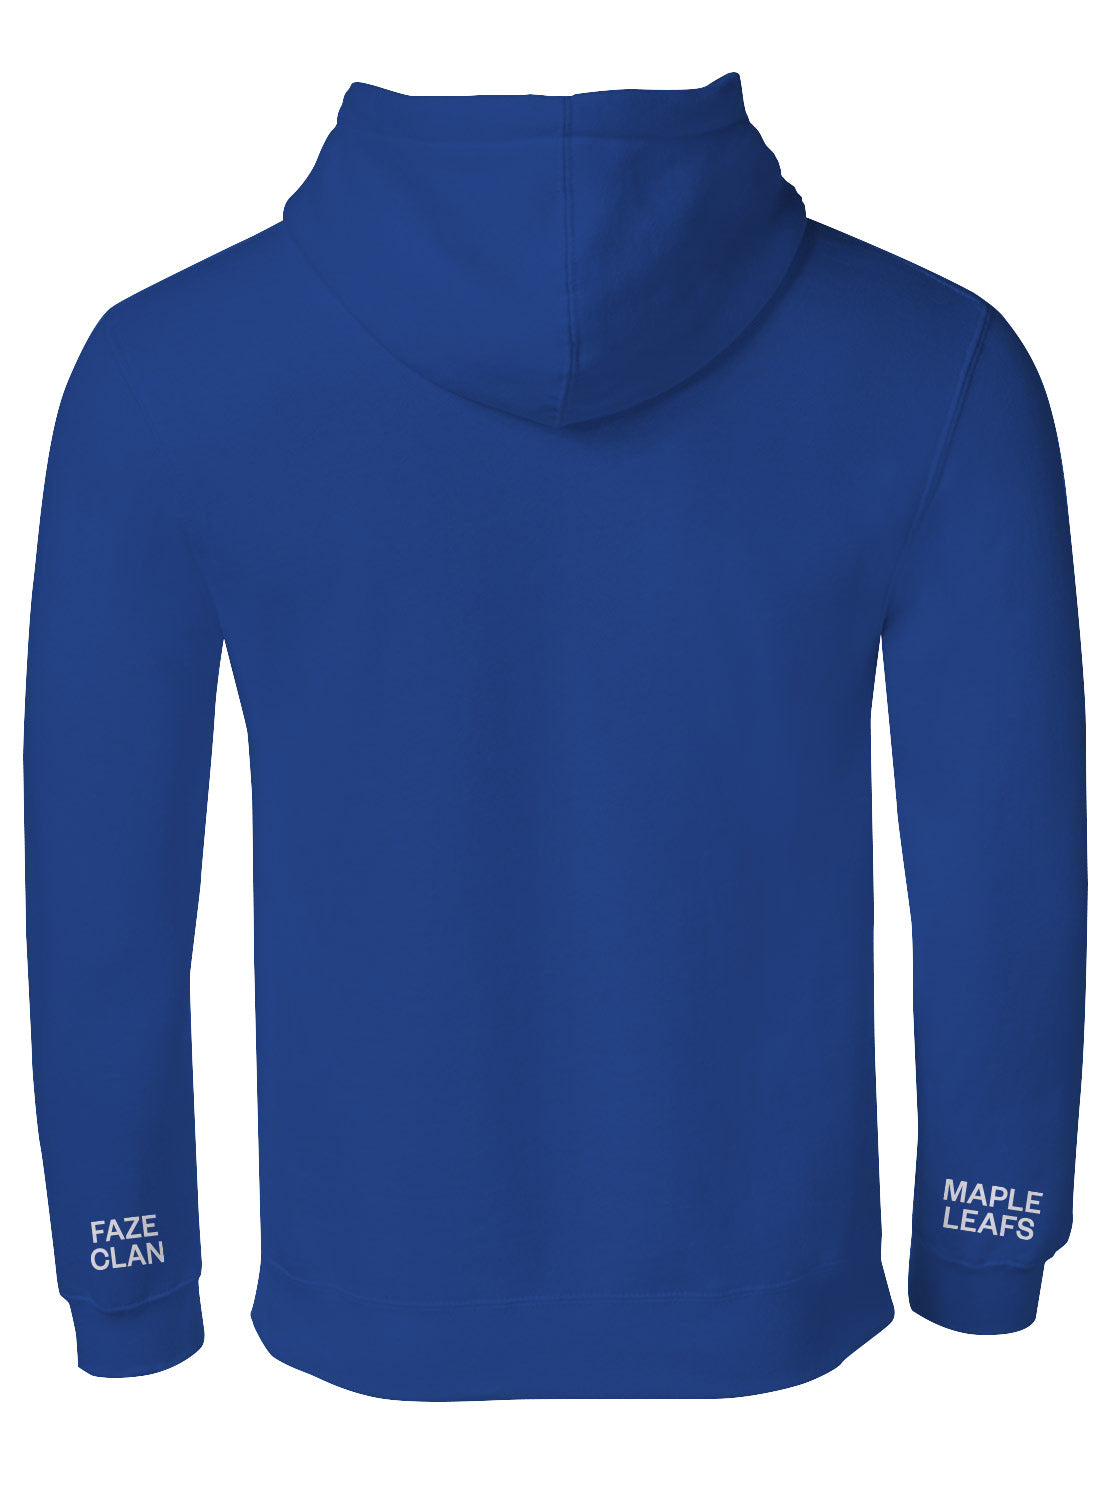 Maple Leafs x FaZe Clan Adidas Men's Forever Hoody